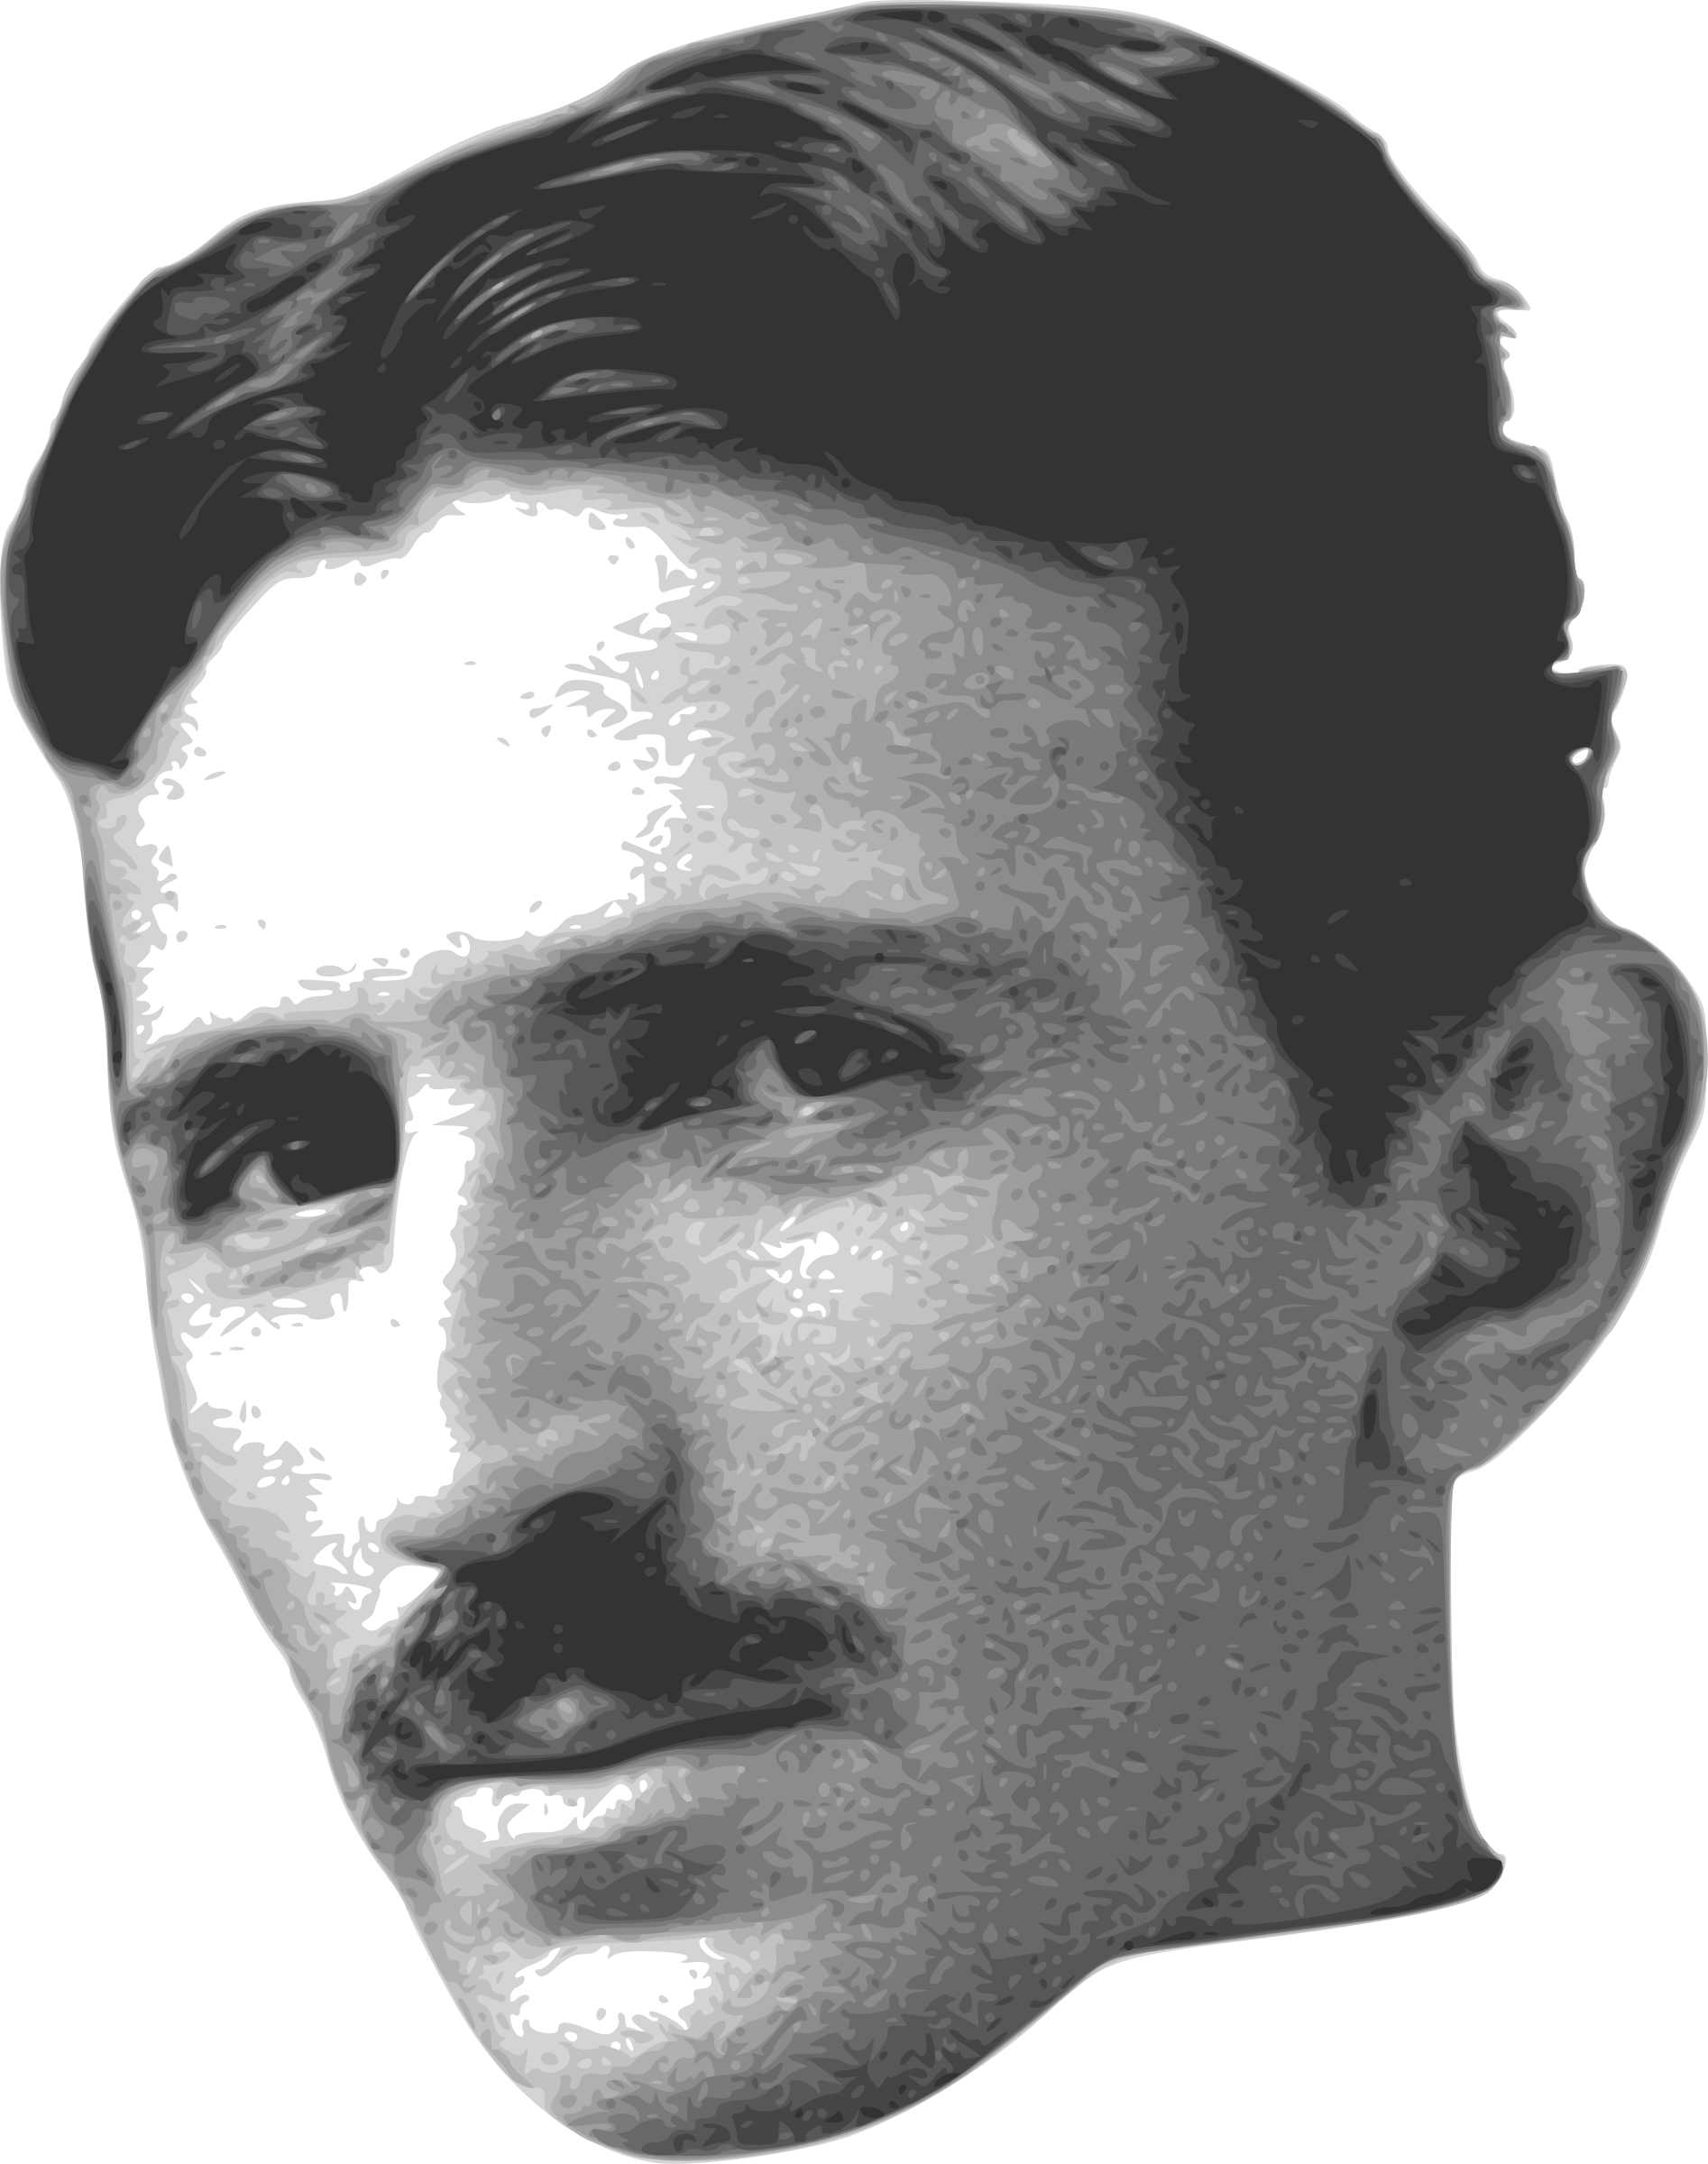 Nikola Tesla 2 by Merlin2525